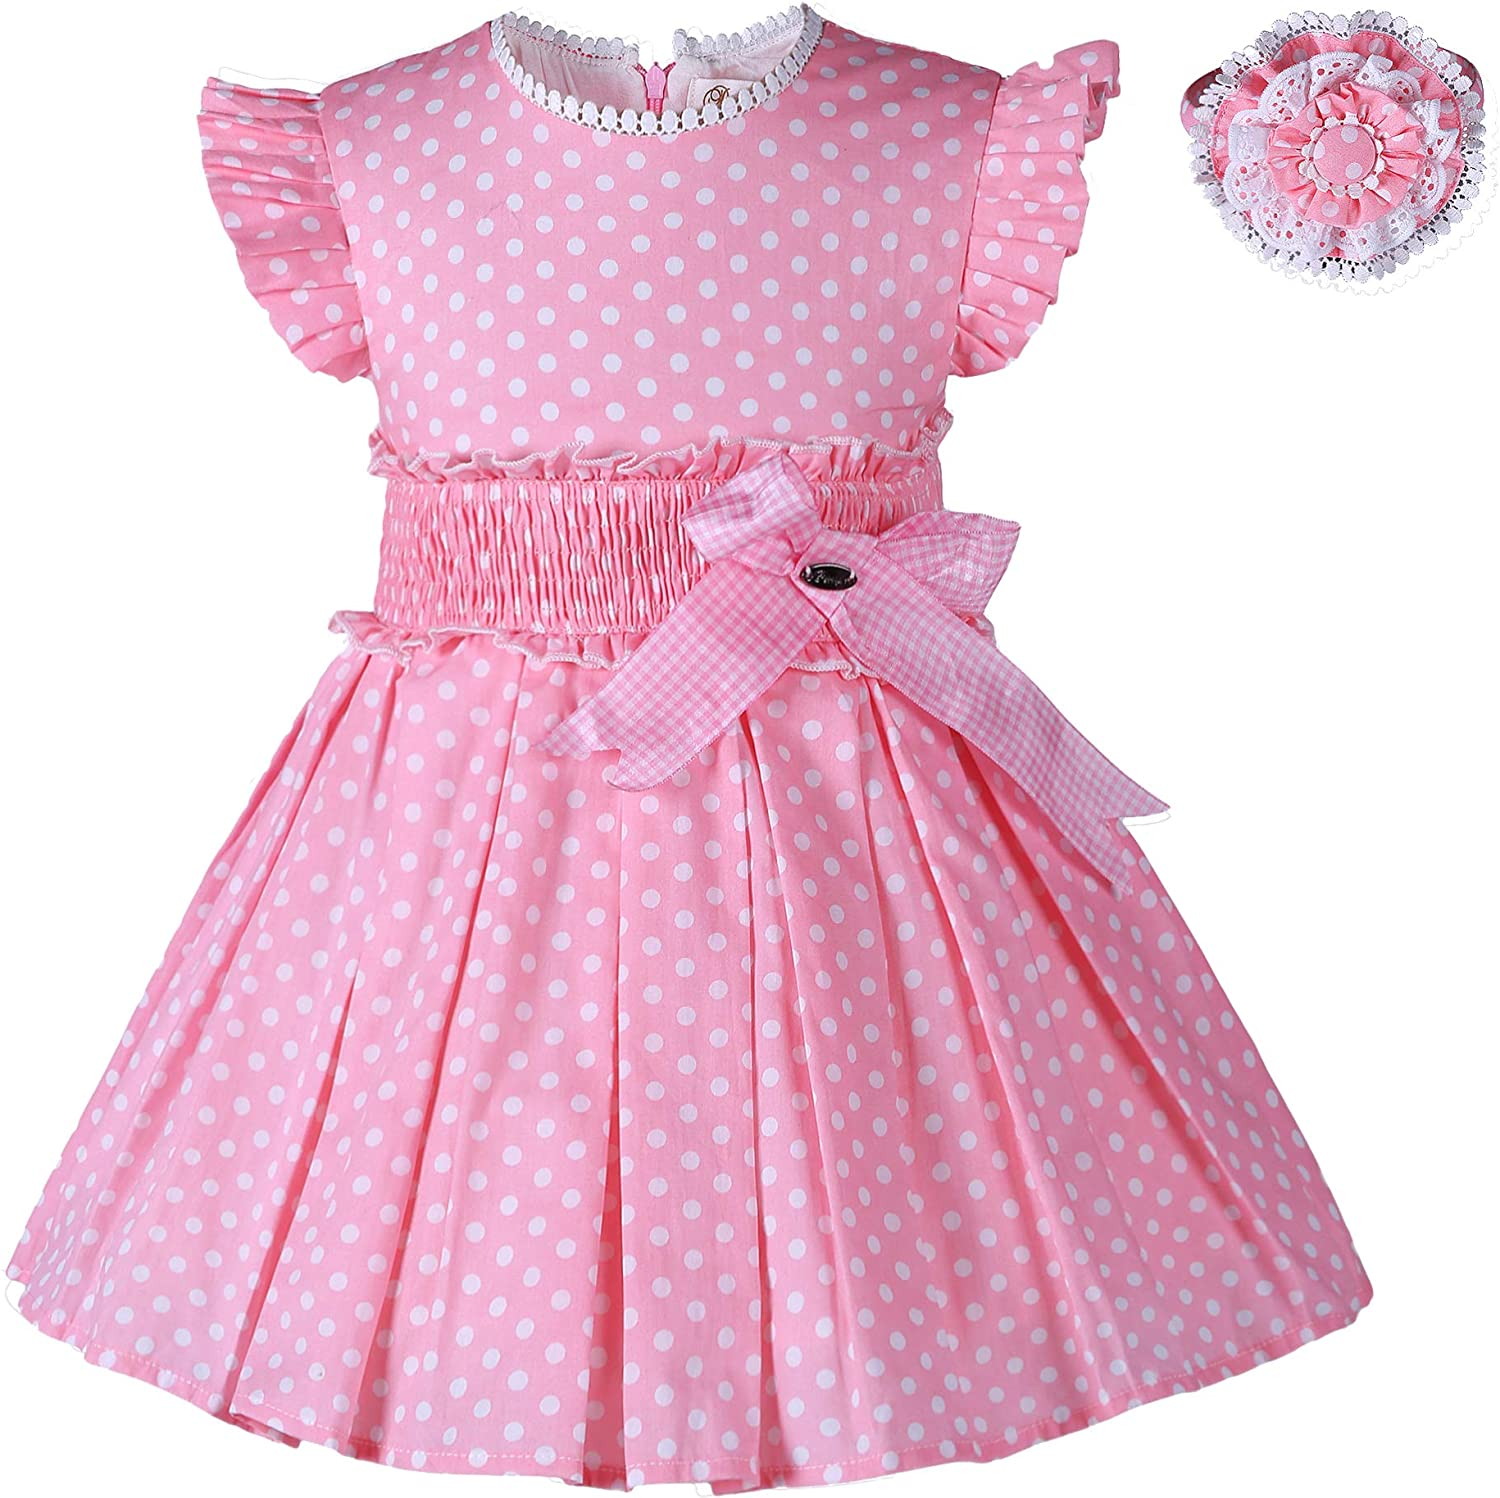 Pettigirl Summer New product Princess Party Dress Pink Elegant Kids outlet Outfits